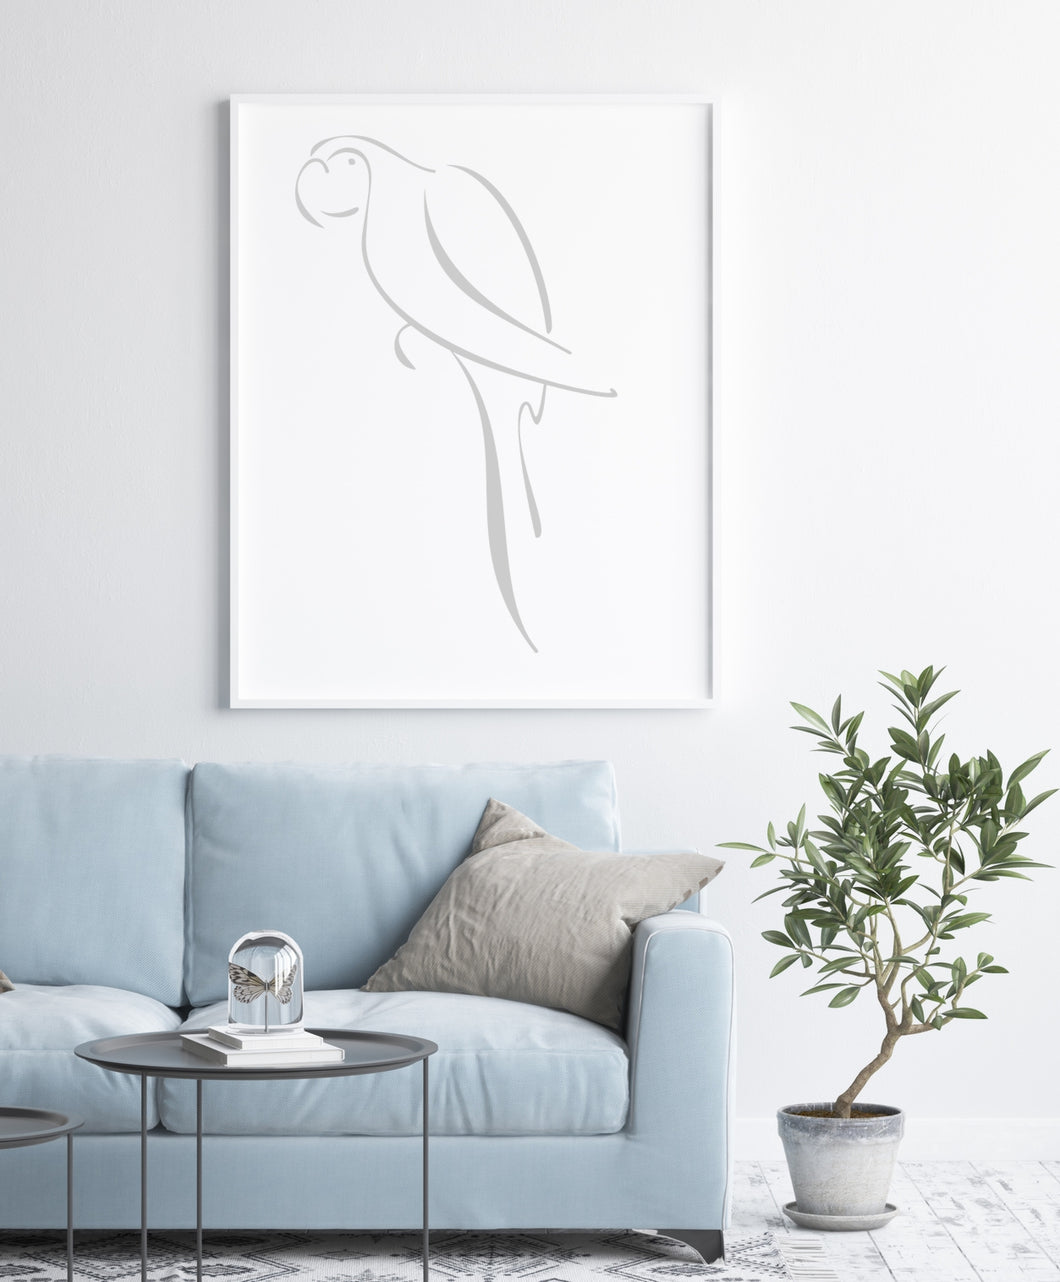 PARROT ARTISTIC SKETCH Big & Small Sizes Colour Wall Sticker Animal Kids Room Modern Style 'Kids149'